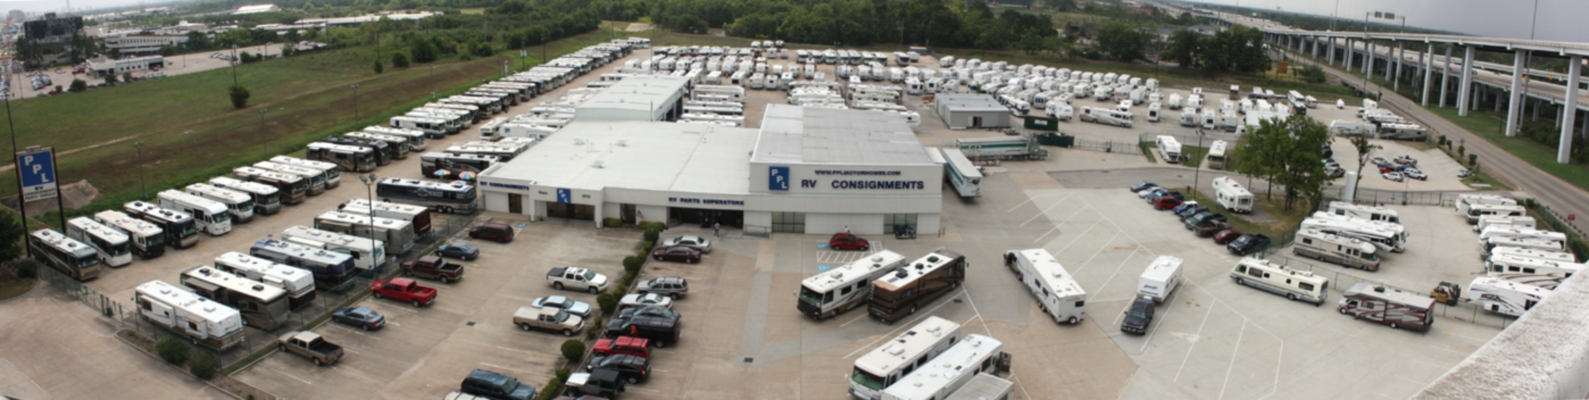 PPL's RV Consignment Centers in Texas | PPL Motor Homes